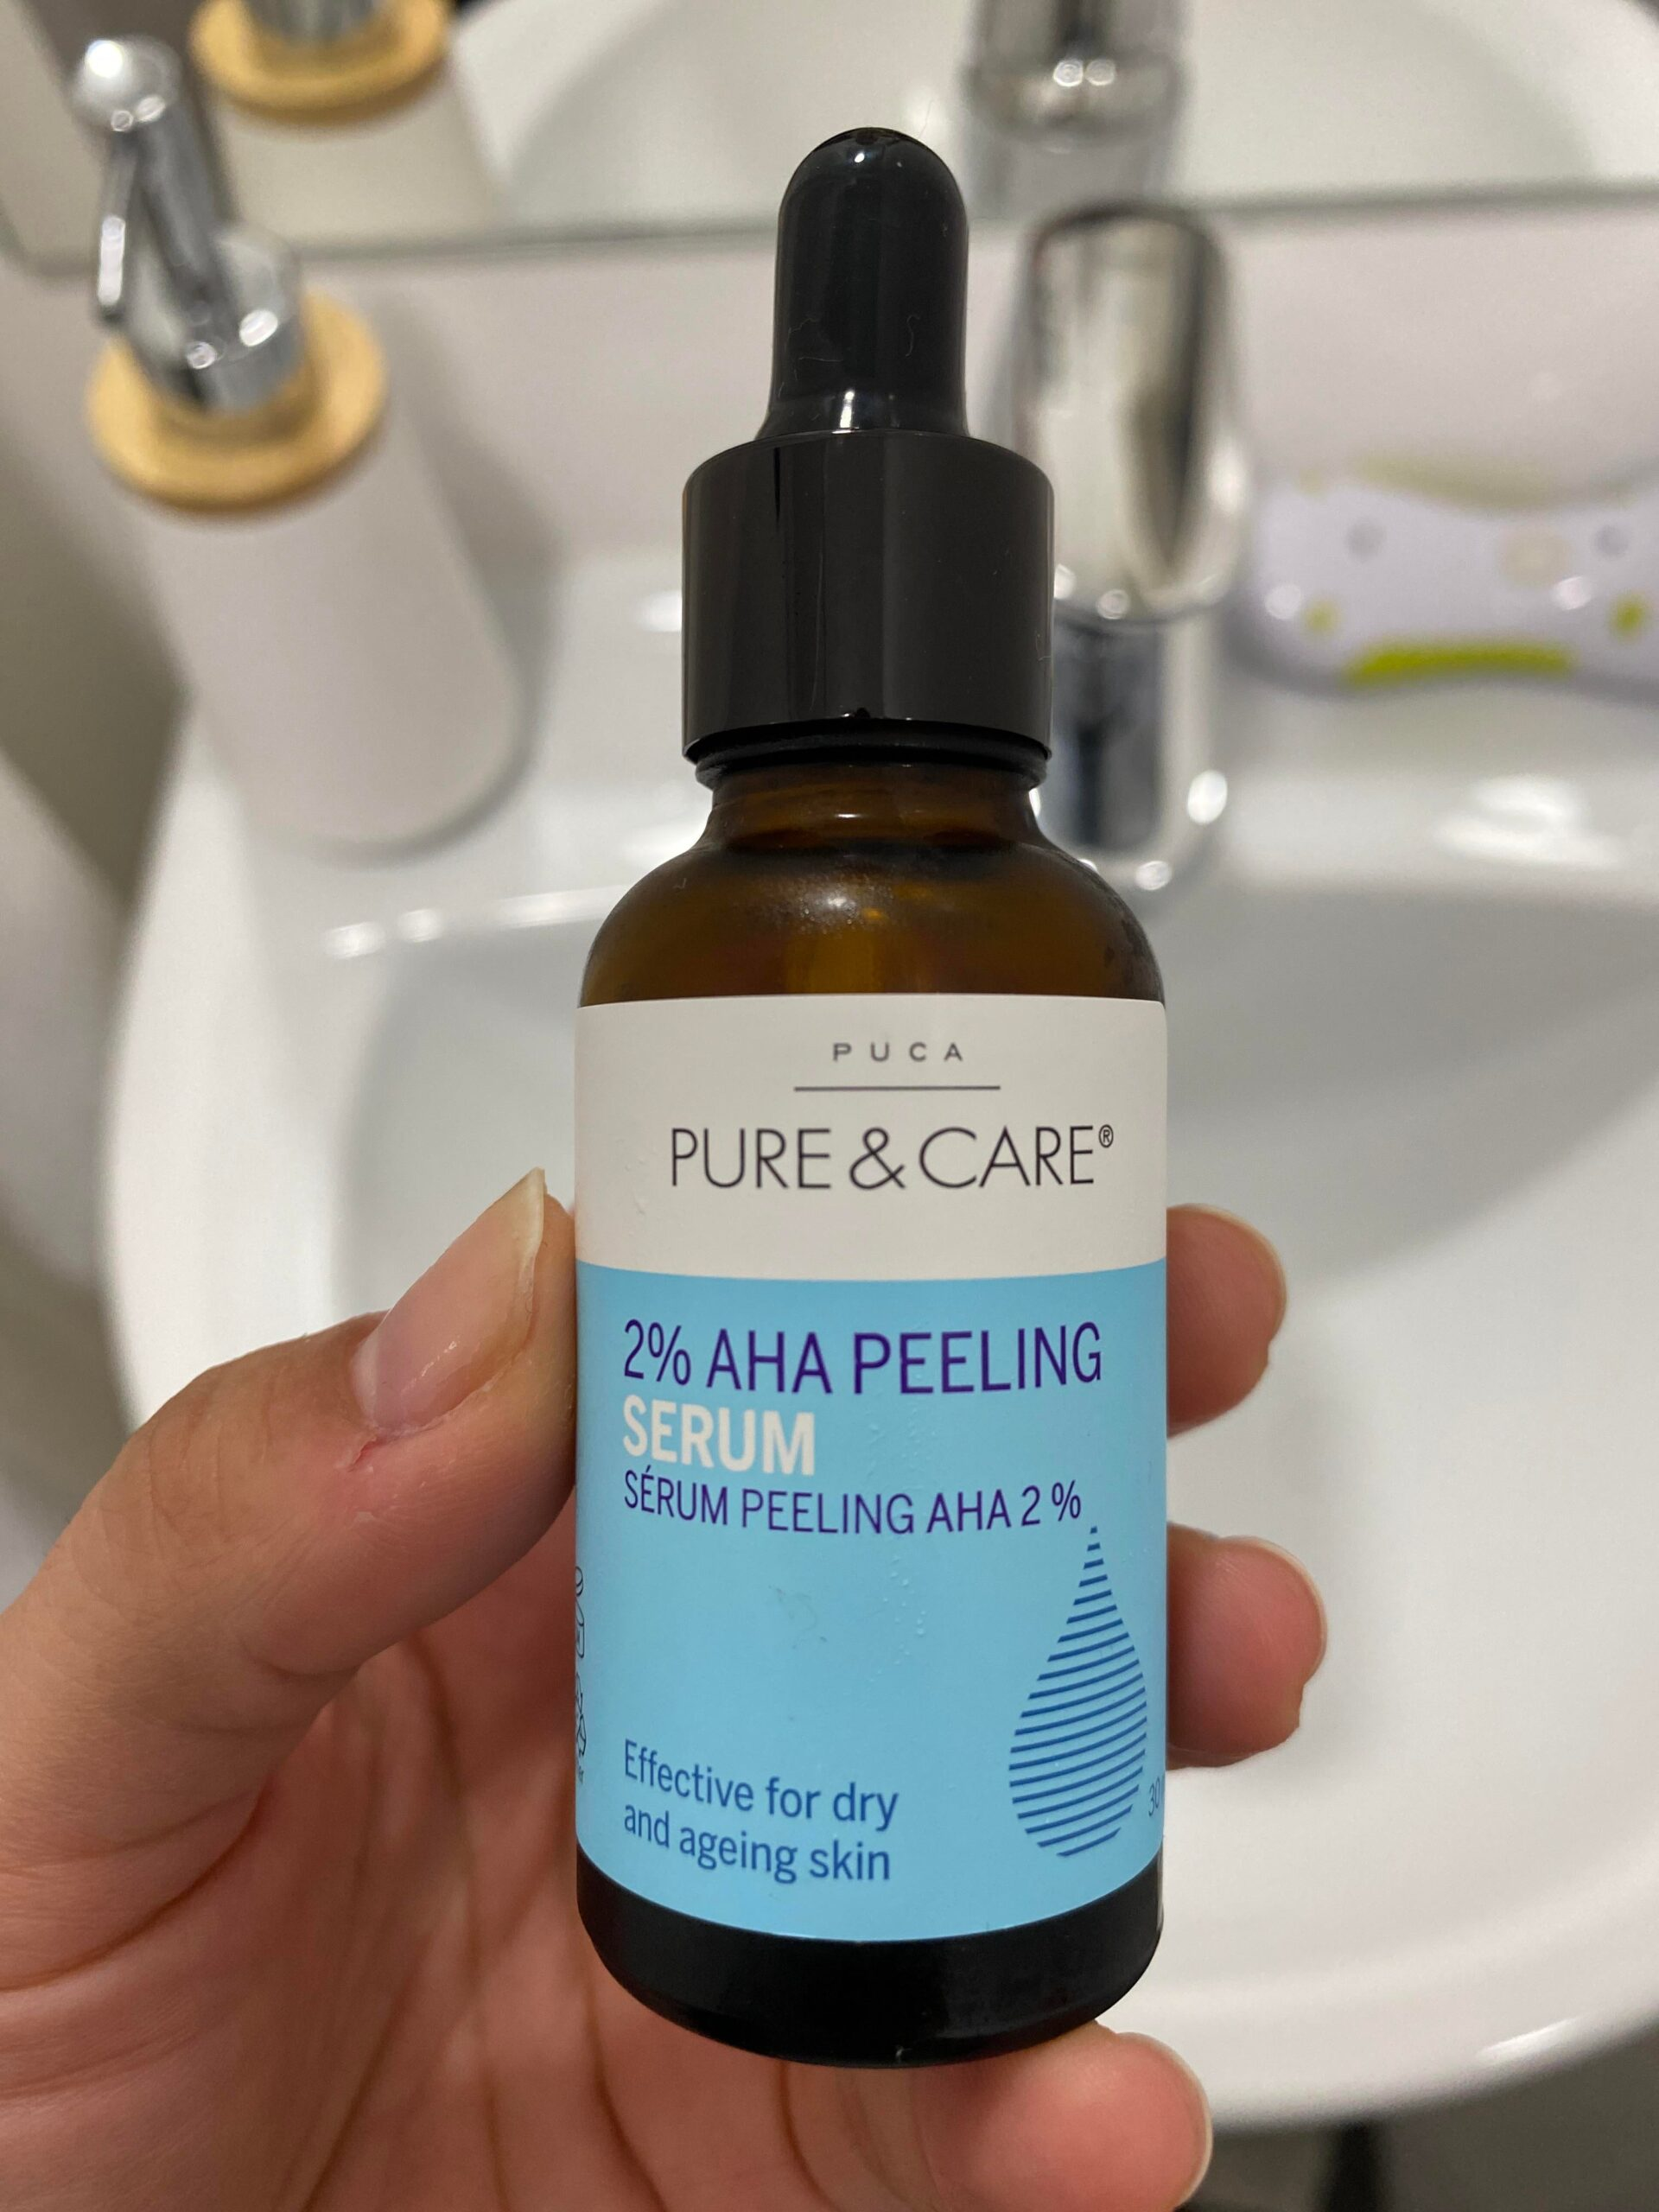 [Product Question] Does anyone know if this product from PUCA (Pure & Care) is any good? I bought it some time ago, forgot about it, and recently found it again as I was sorting out all of my skincare products. Would like to know if it's worth using, or if I should toss it and buy something else?